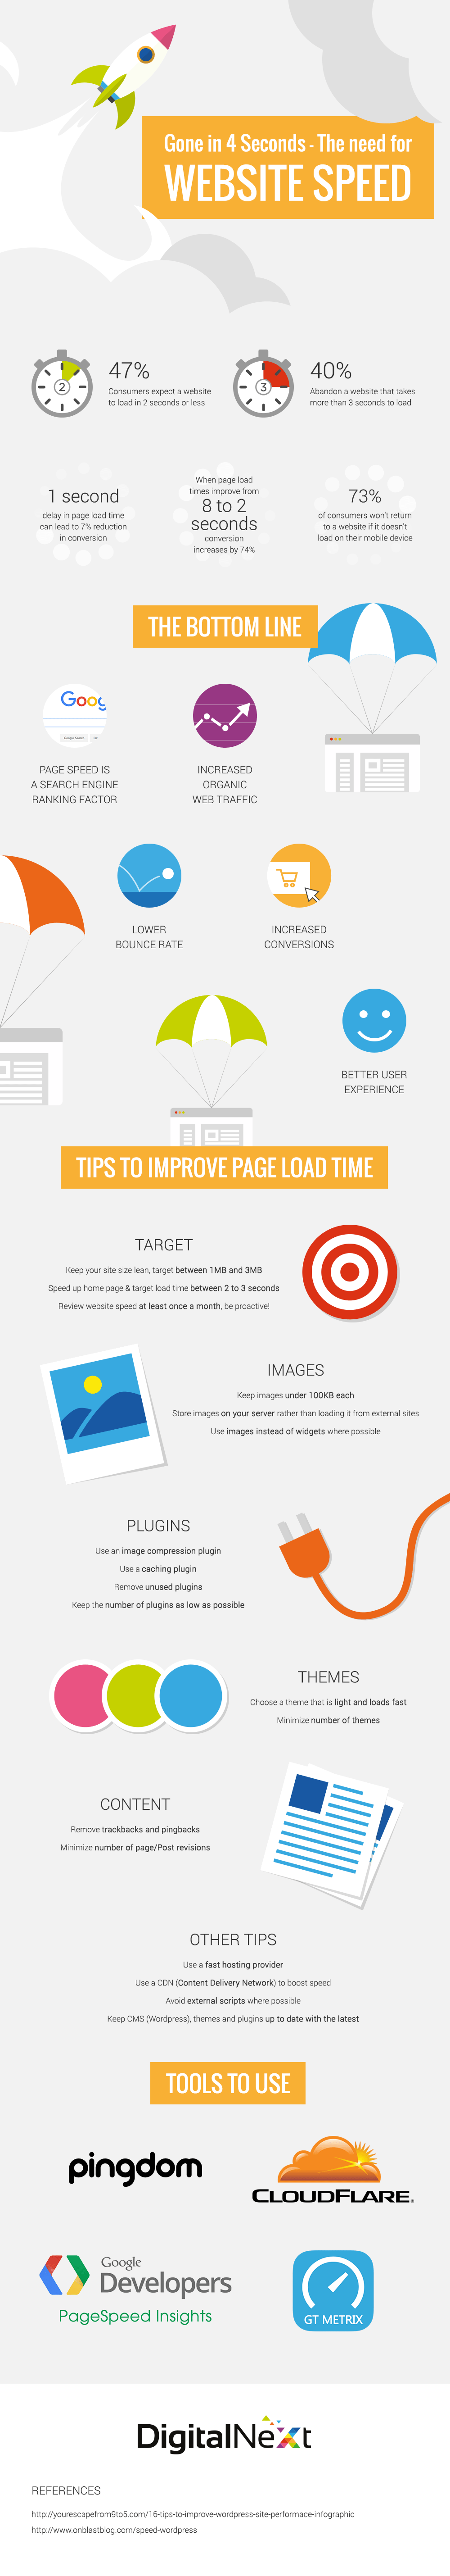 Improve Site Speed